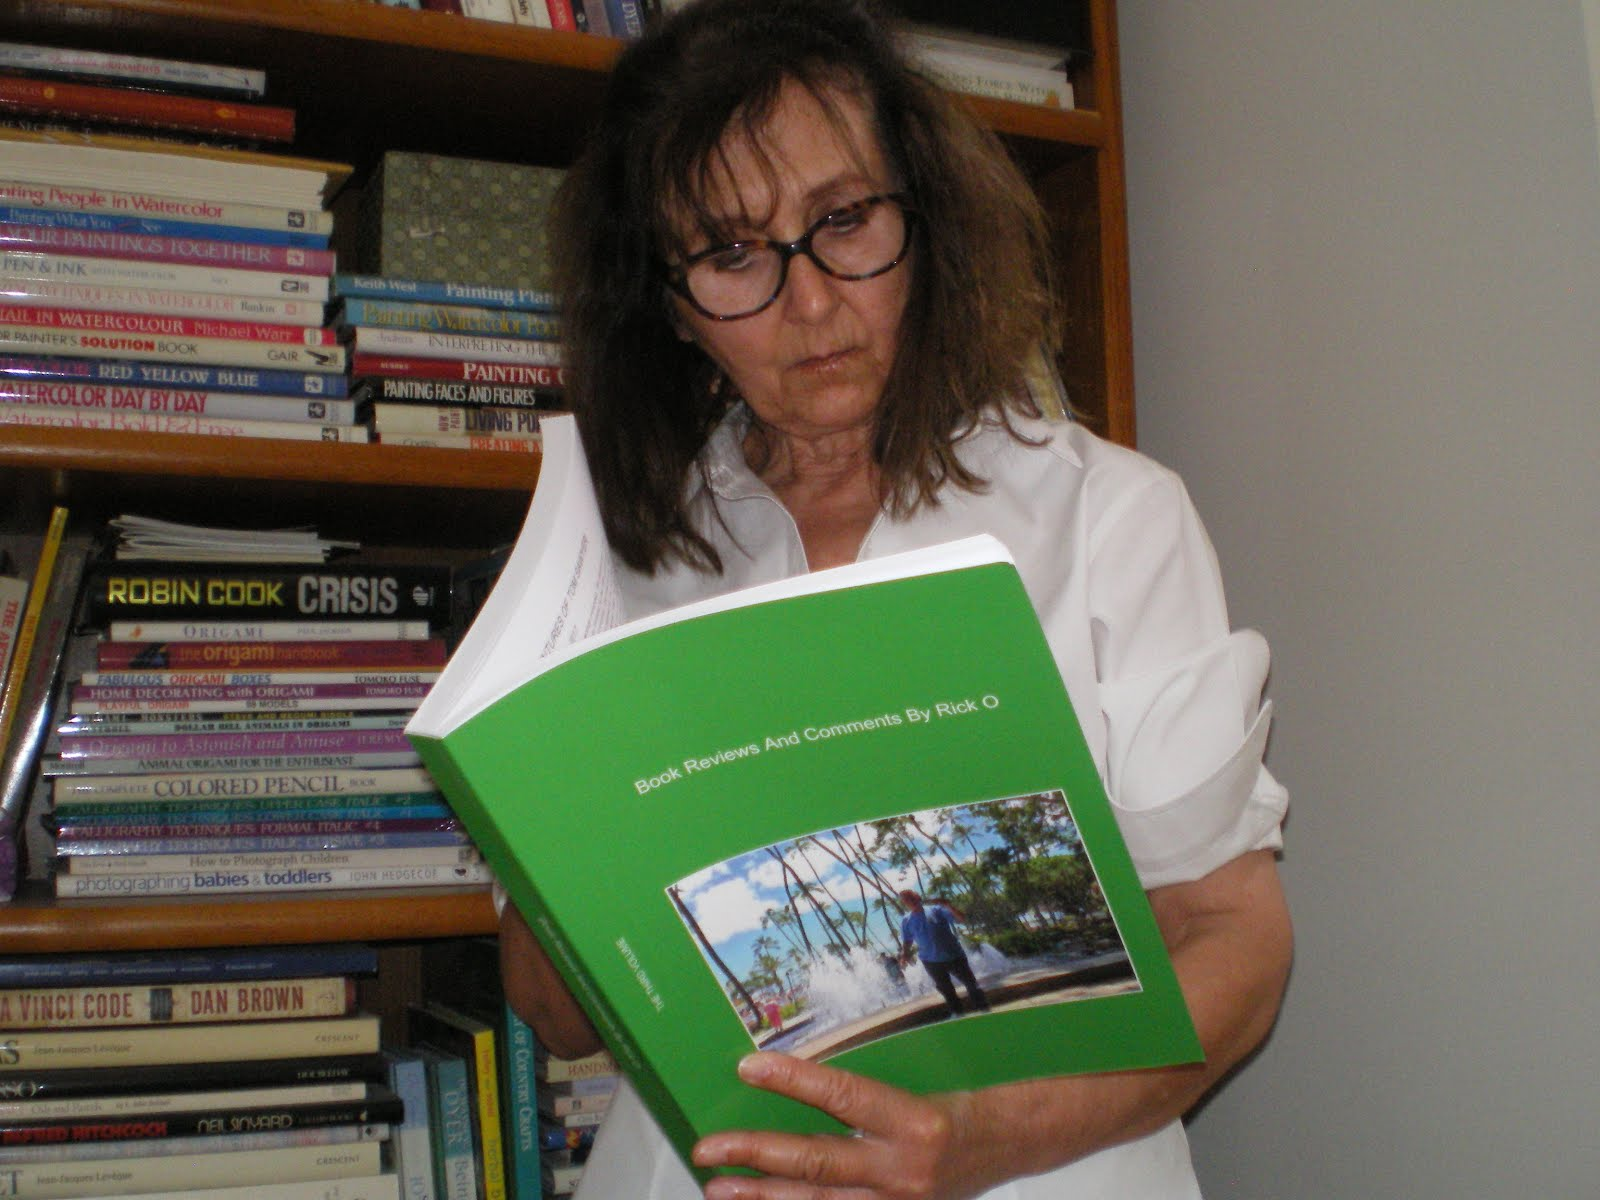 Children's Picture Book Specialist, Pat Koelmel Enjoys Her Copy!